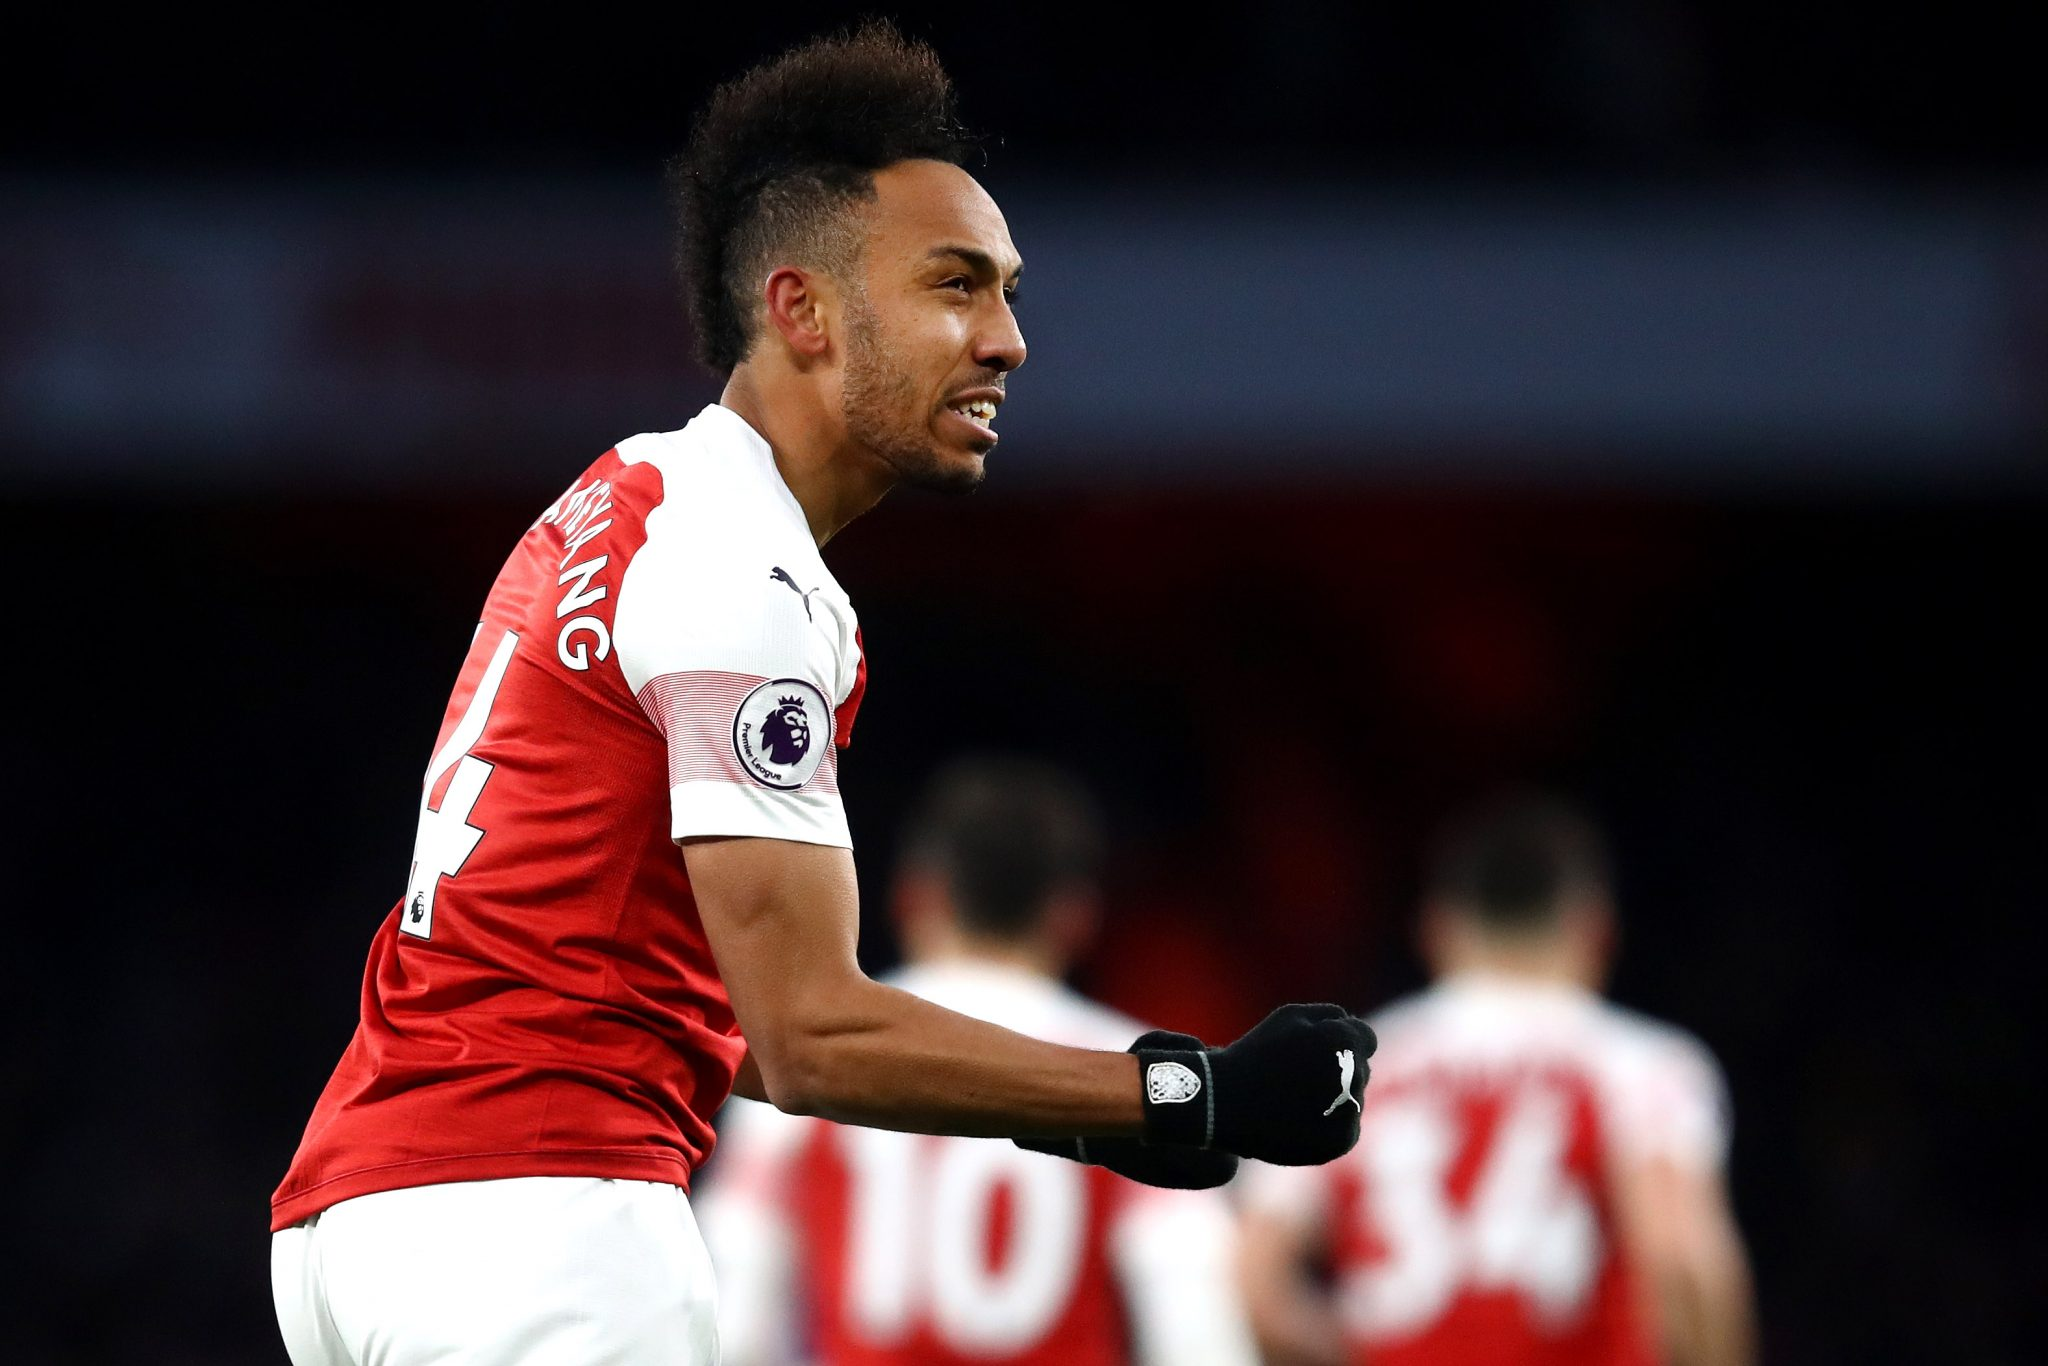 Aubameyang reportedly open to Man United move - but should Arsenal consider selling?